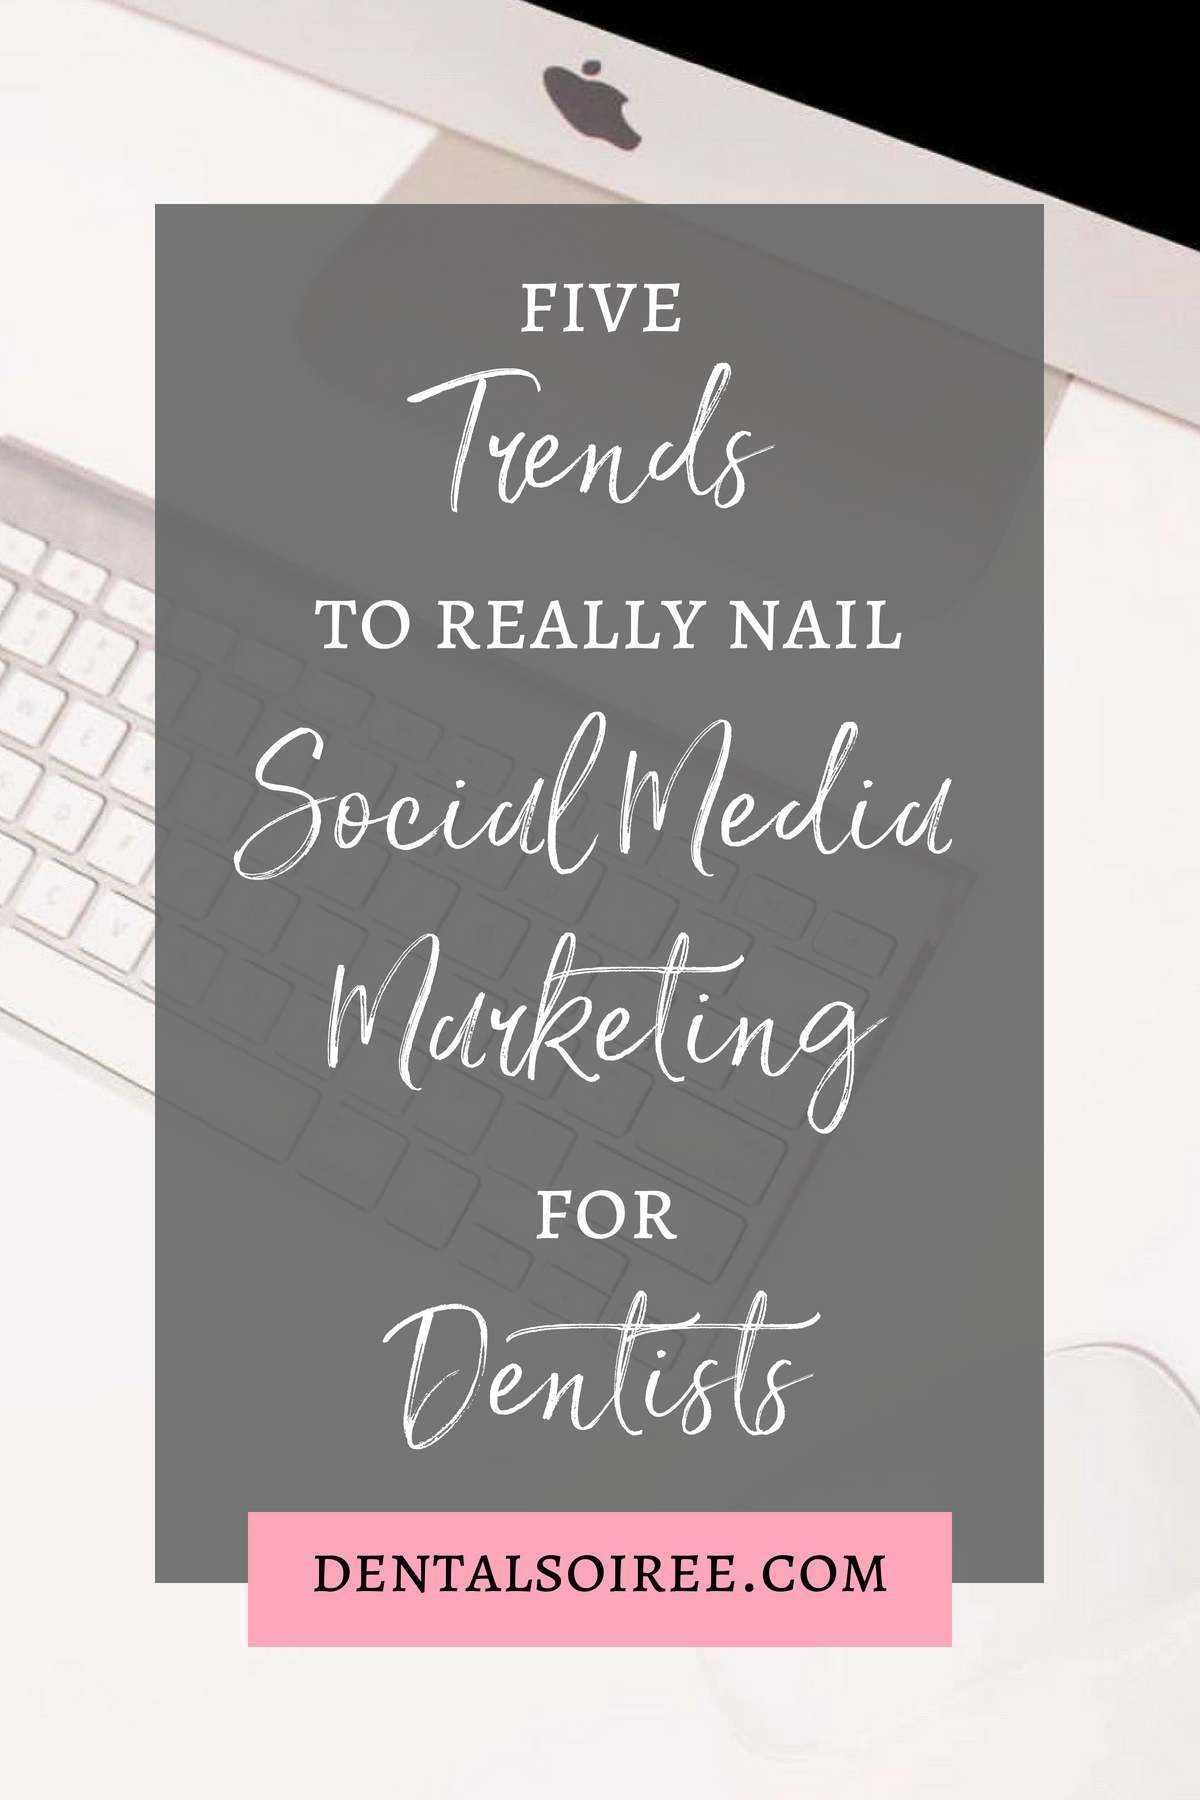 5 Trends to Really Nail Social Media Marketing for Dentists